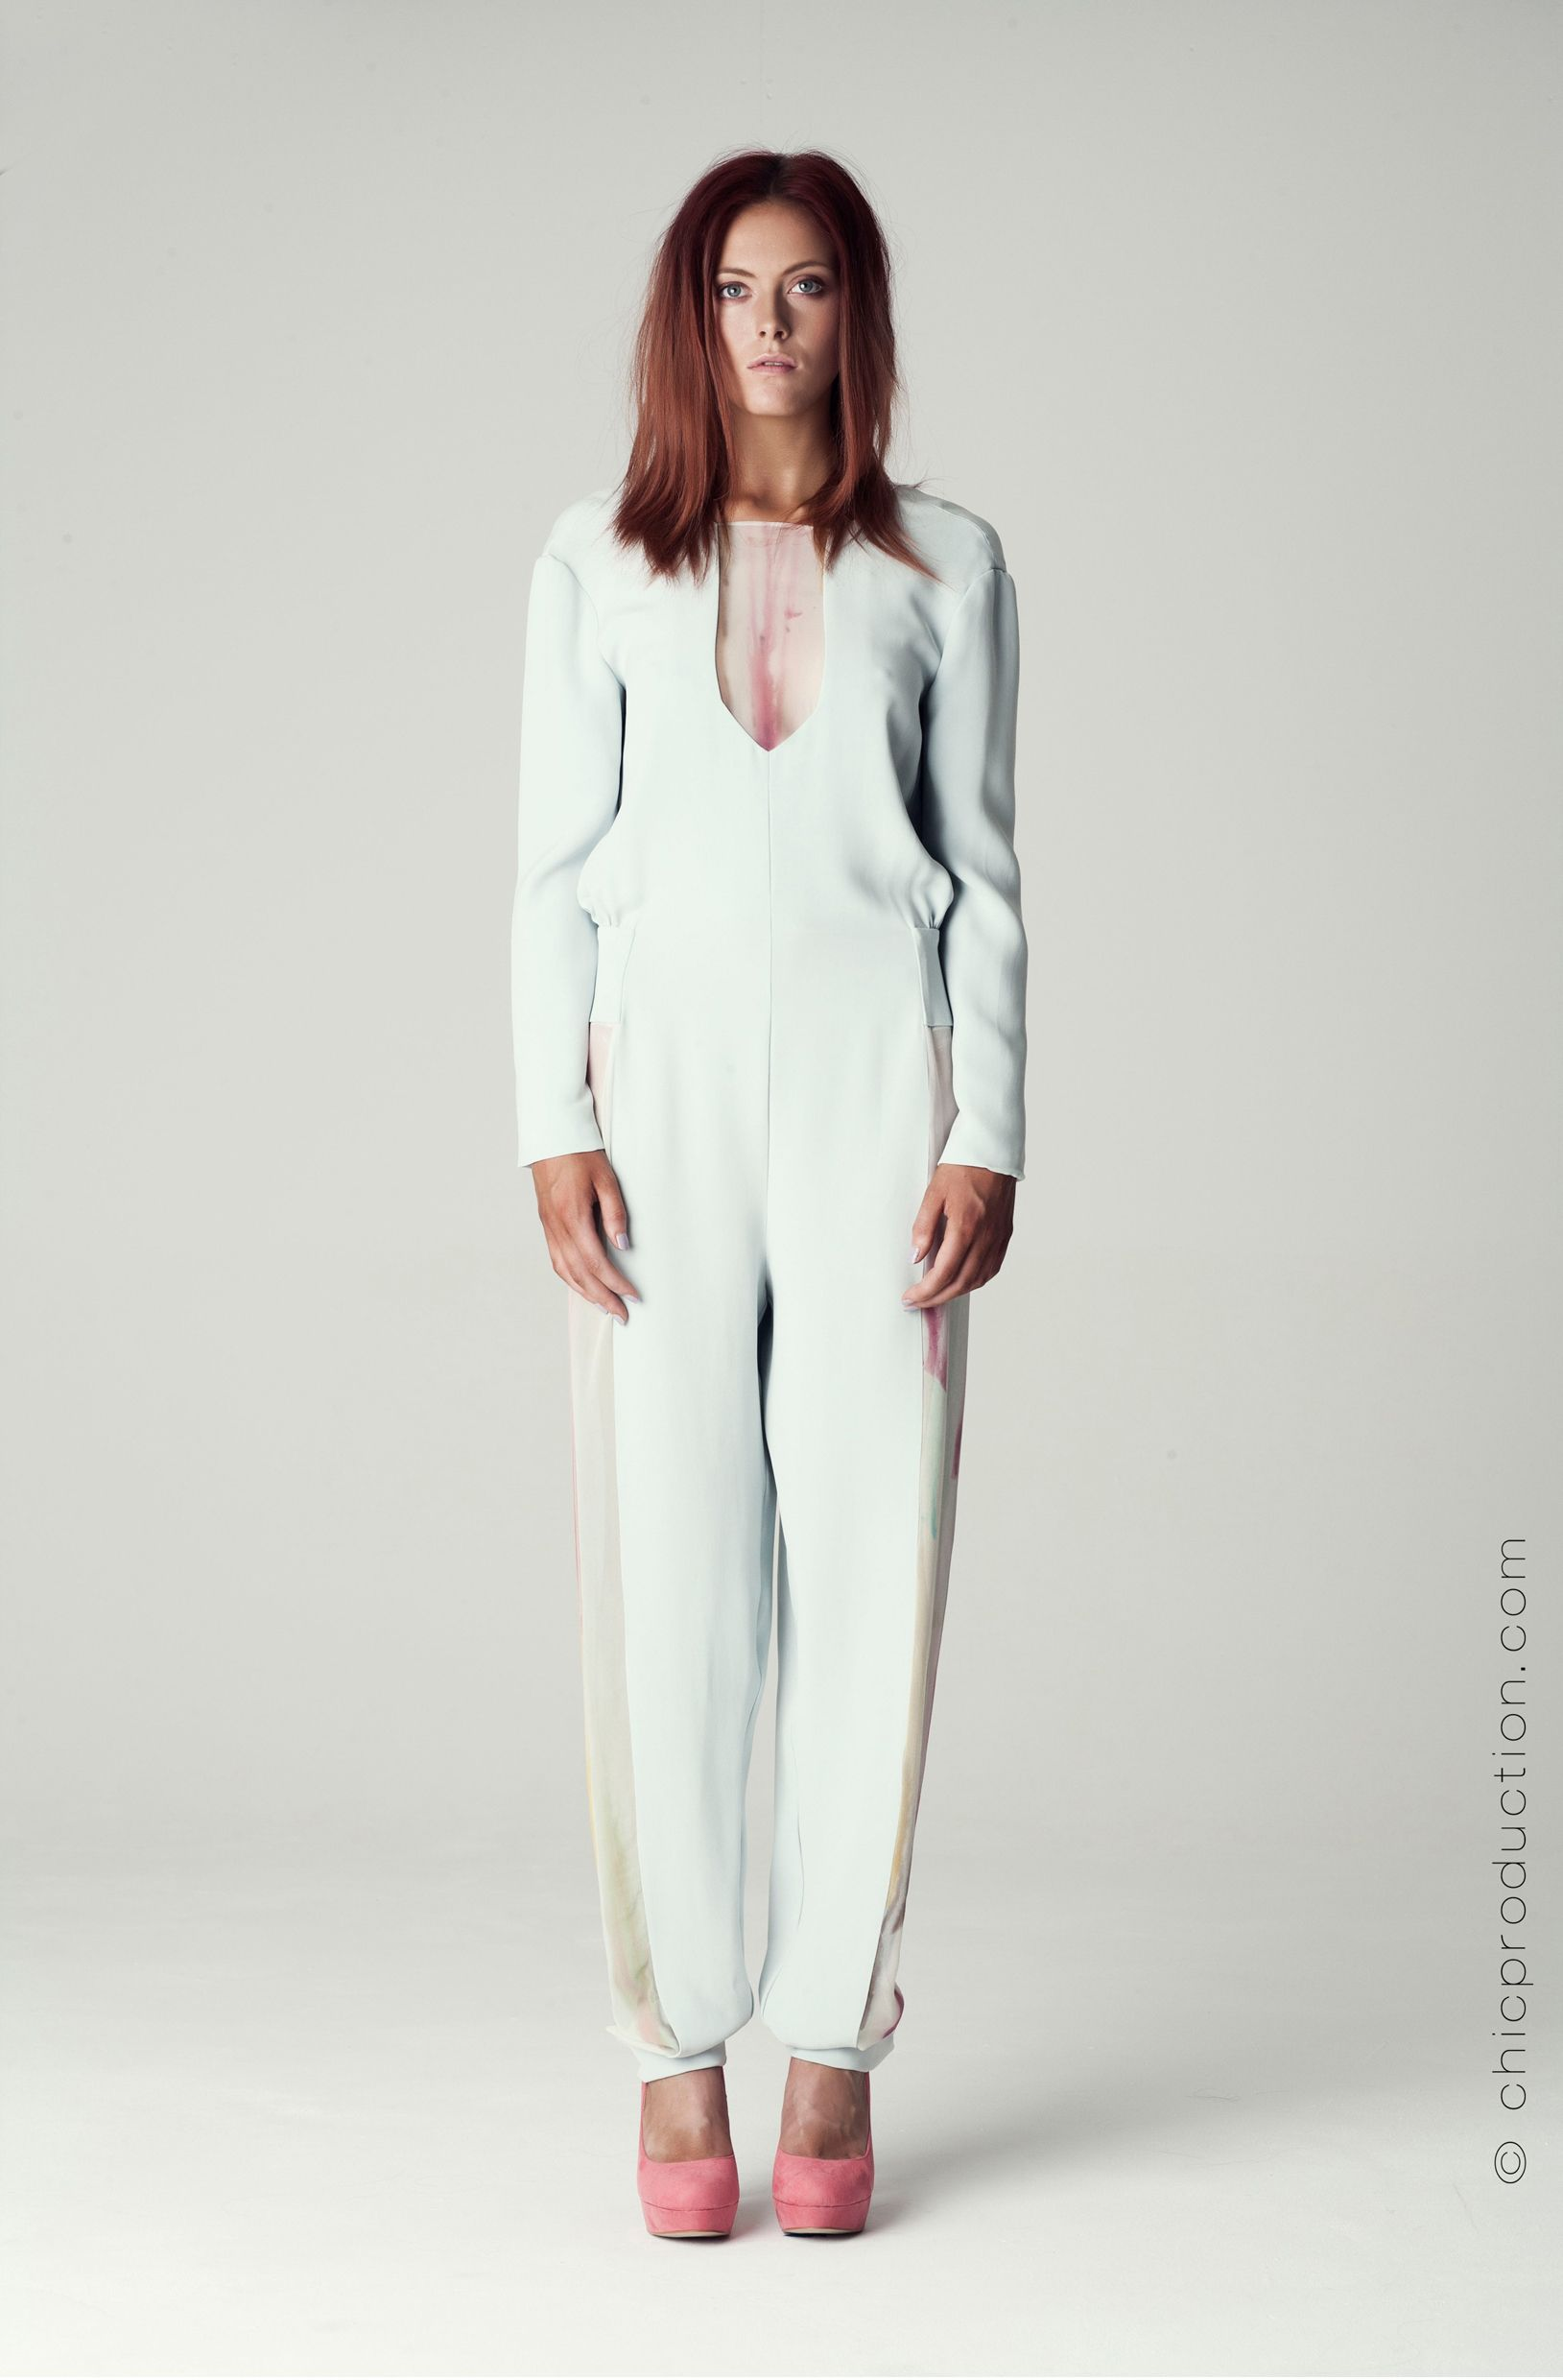 S/S 13 Hand dyed Jumpsuit.  Photographer: Richie Crossley  Model: Jade Louise Rodgers MUA: Jenna Kelly Assistant: Lotte Hansen